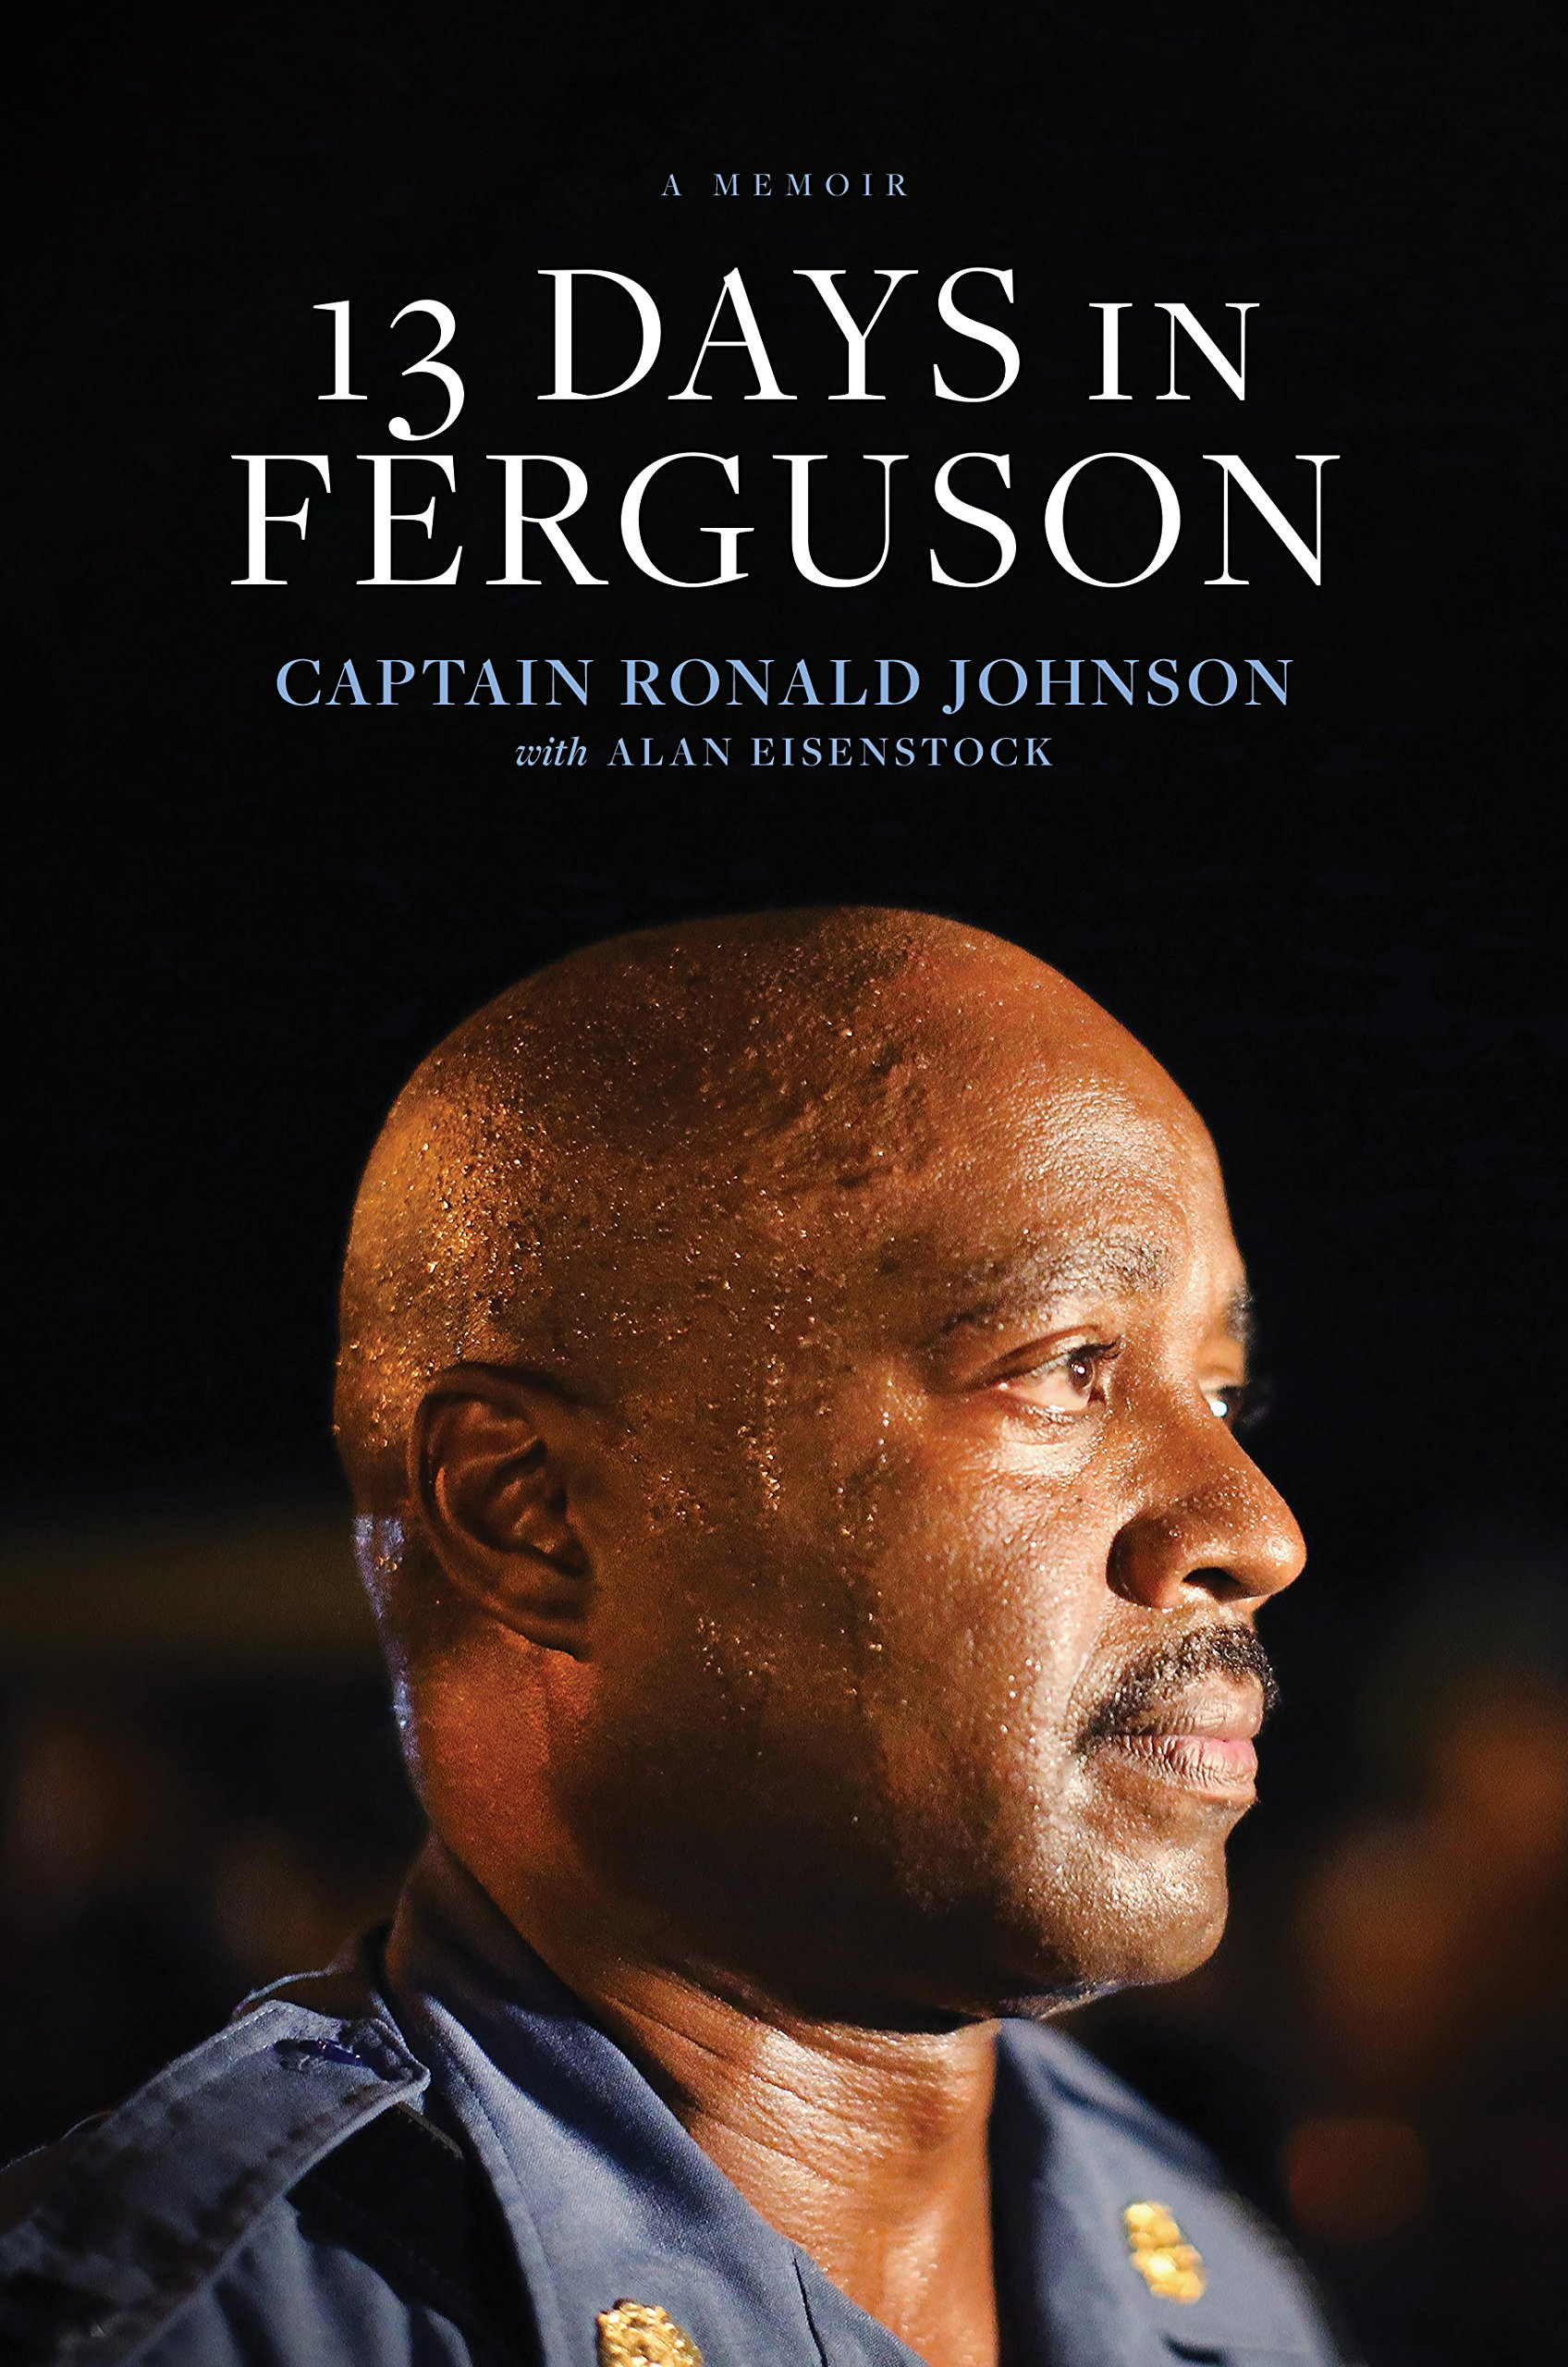 13 Days in Ferguson